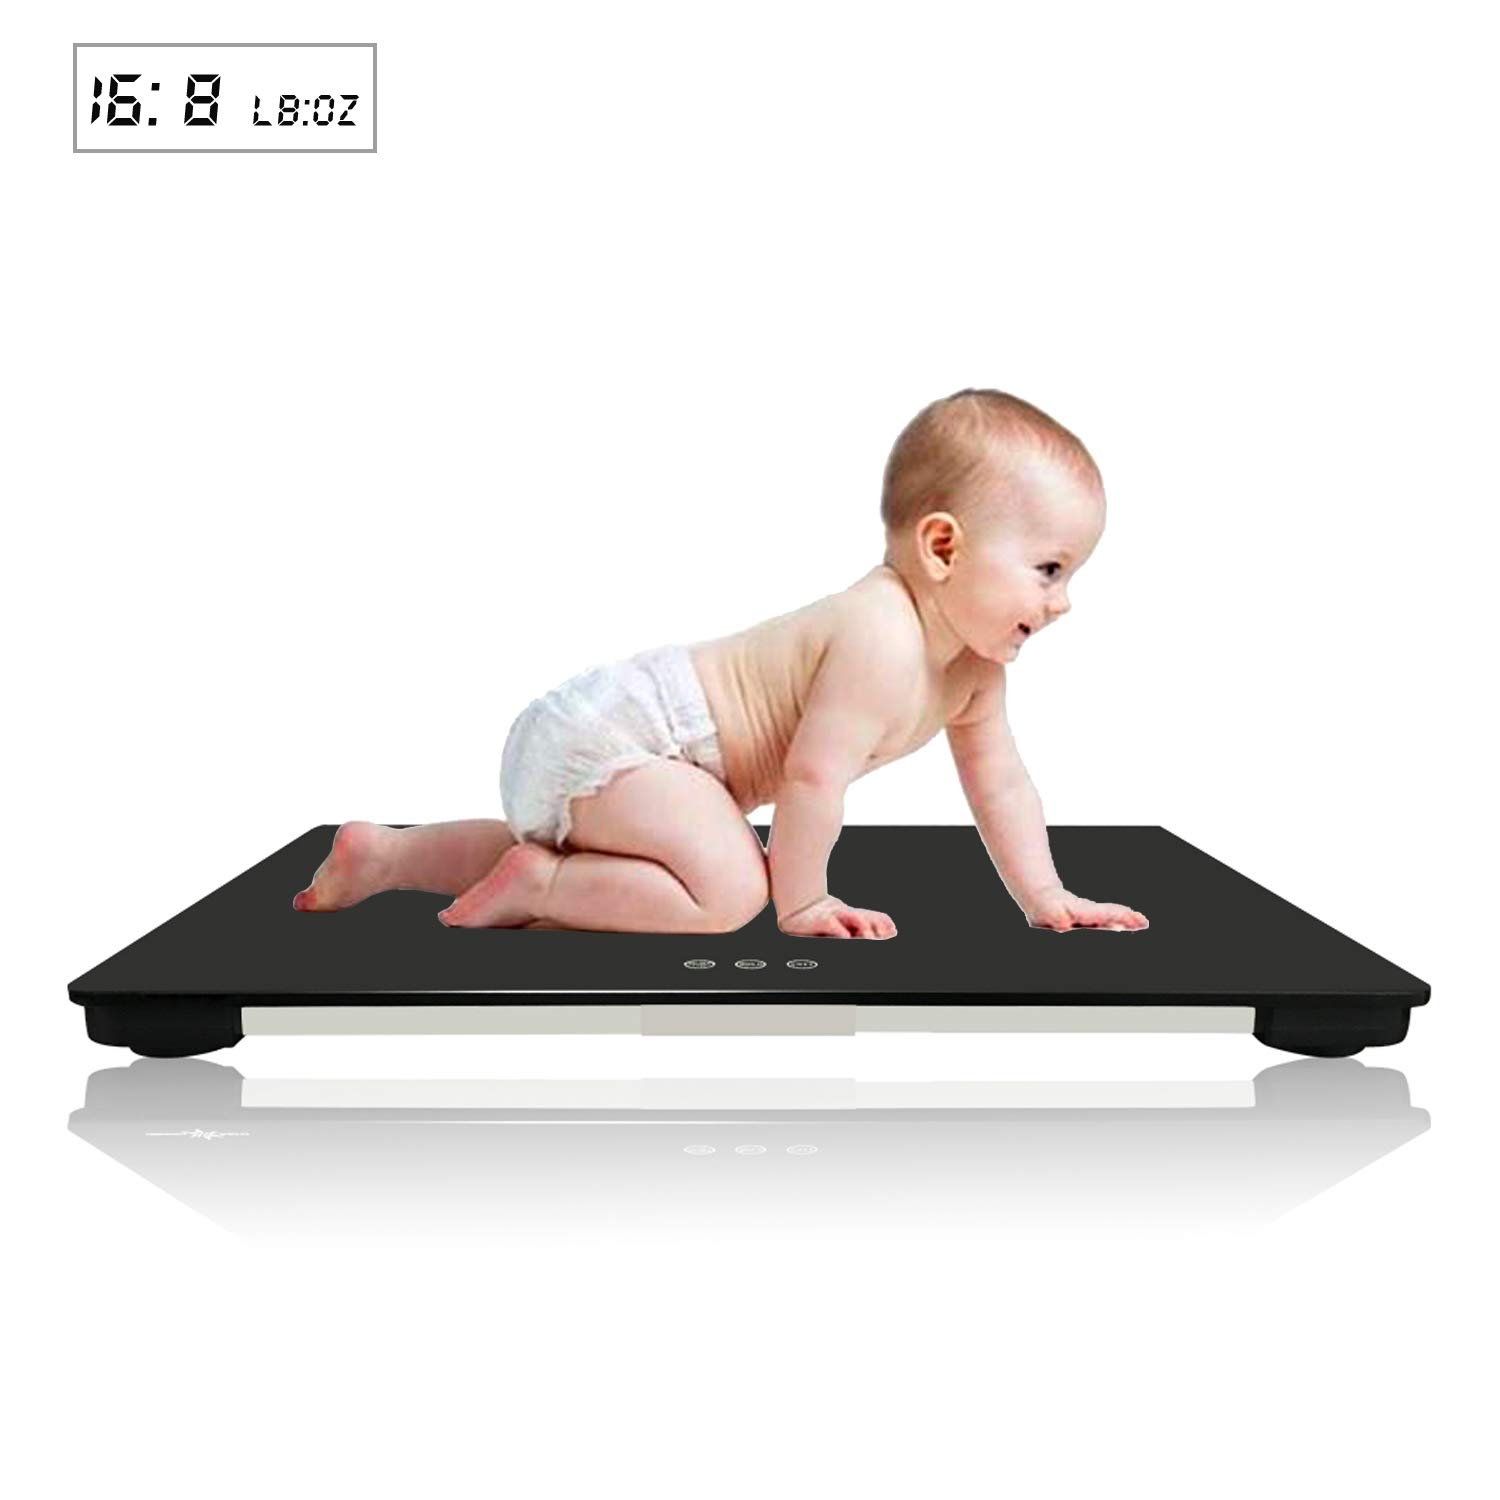 iSnow-Med Digital Baby Scale with Capacity of 220 LBS (± 0.35 OZ), Suitable for Baby/Adult/Pets, KG/LB/LB:OZ (65x45CM) by iSnow-Med